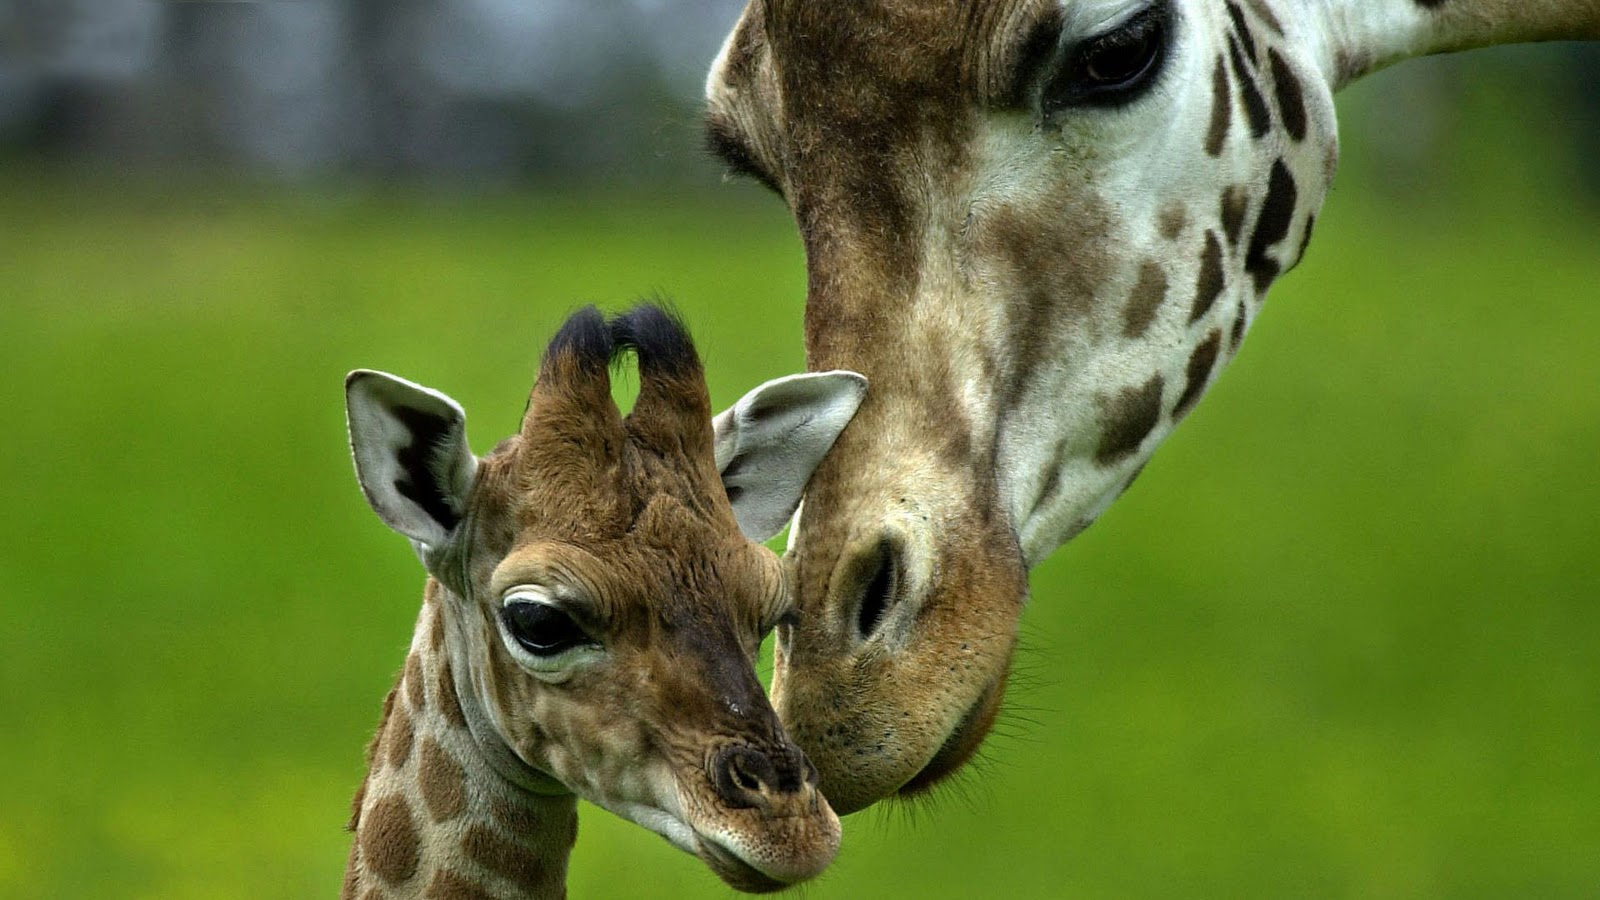 Giraffe Images Collection  1600x900